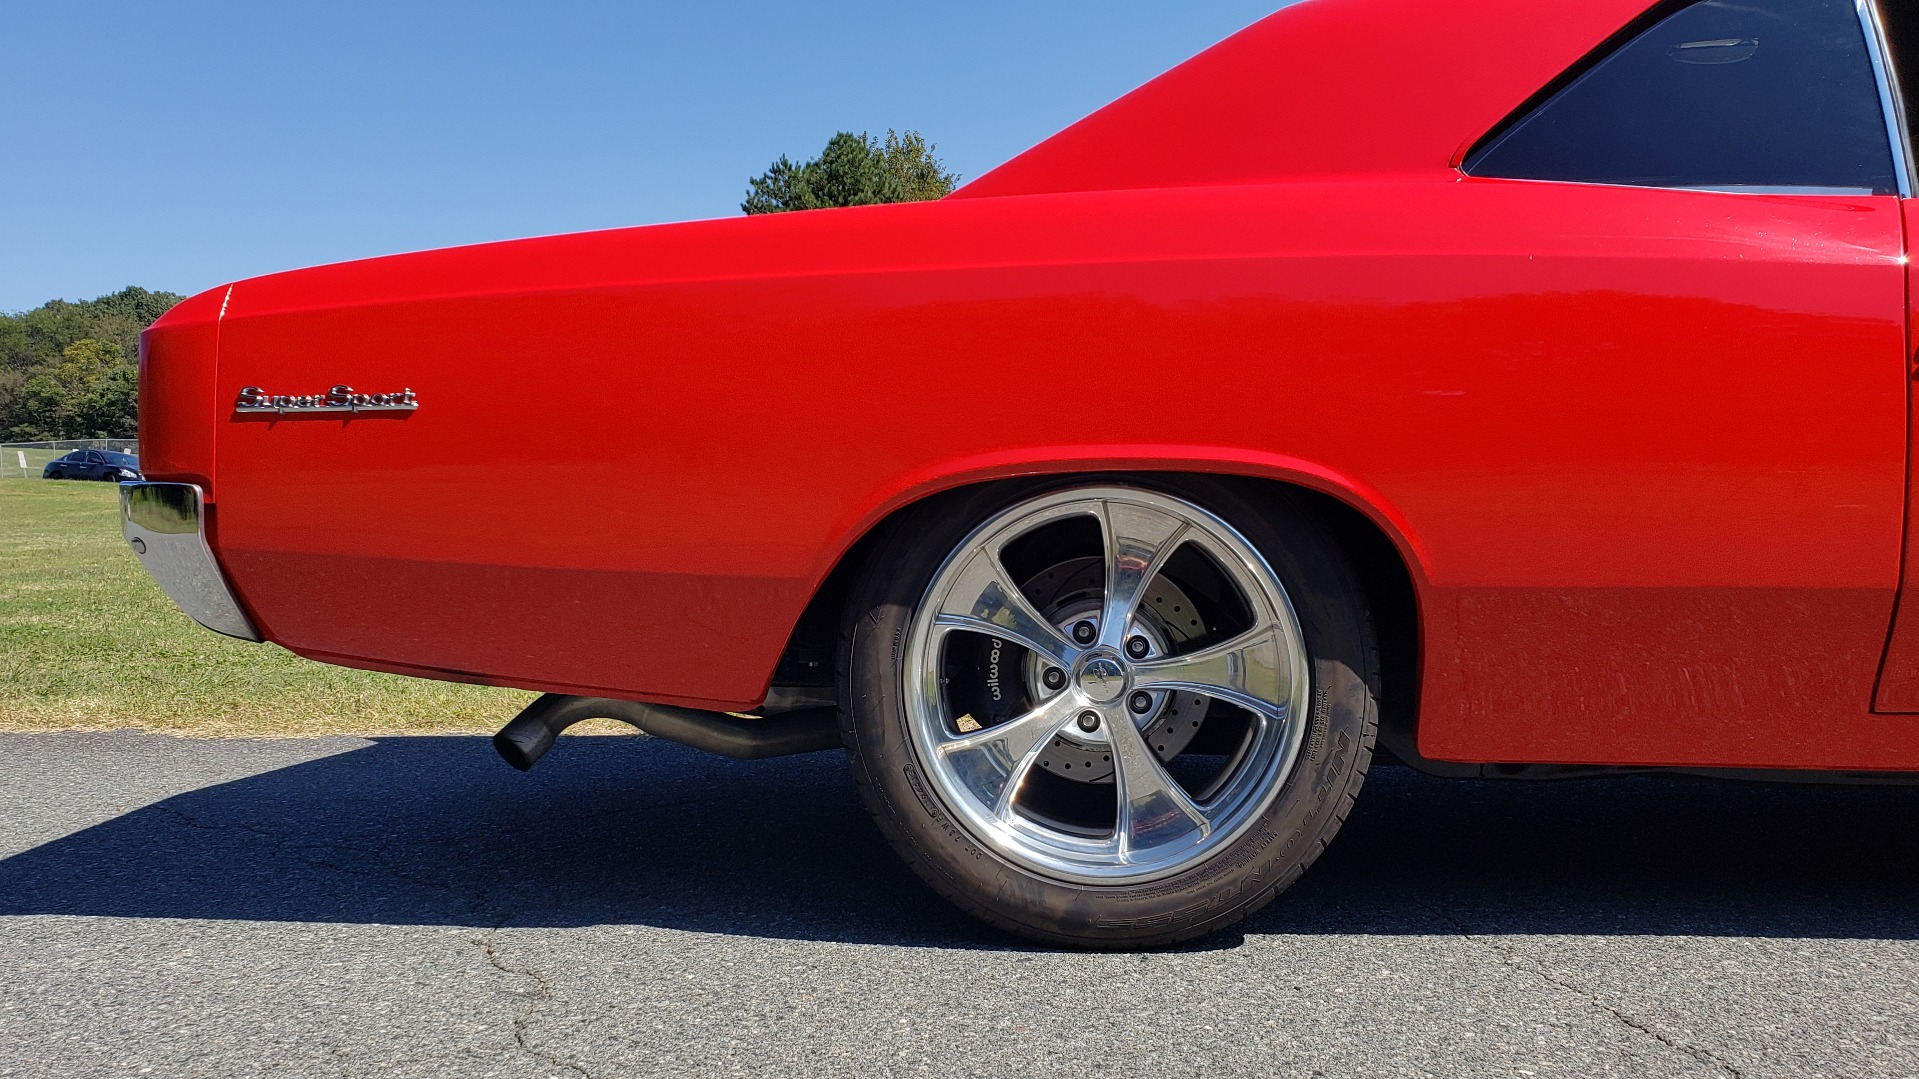 Used 1966 Chevrolet CHEVELLE SS 396 CUSTOM RESTO-MOD / 4-SPEED MANUAL / 12-BOLT REAR for sale $74,999 at Formula Imports in Charlotte NC 28227 90